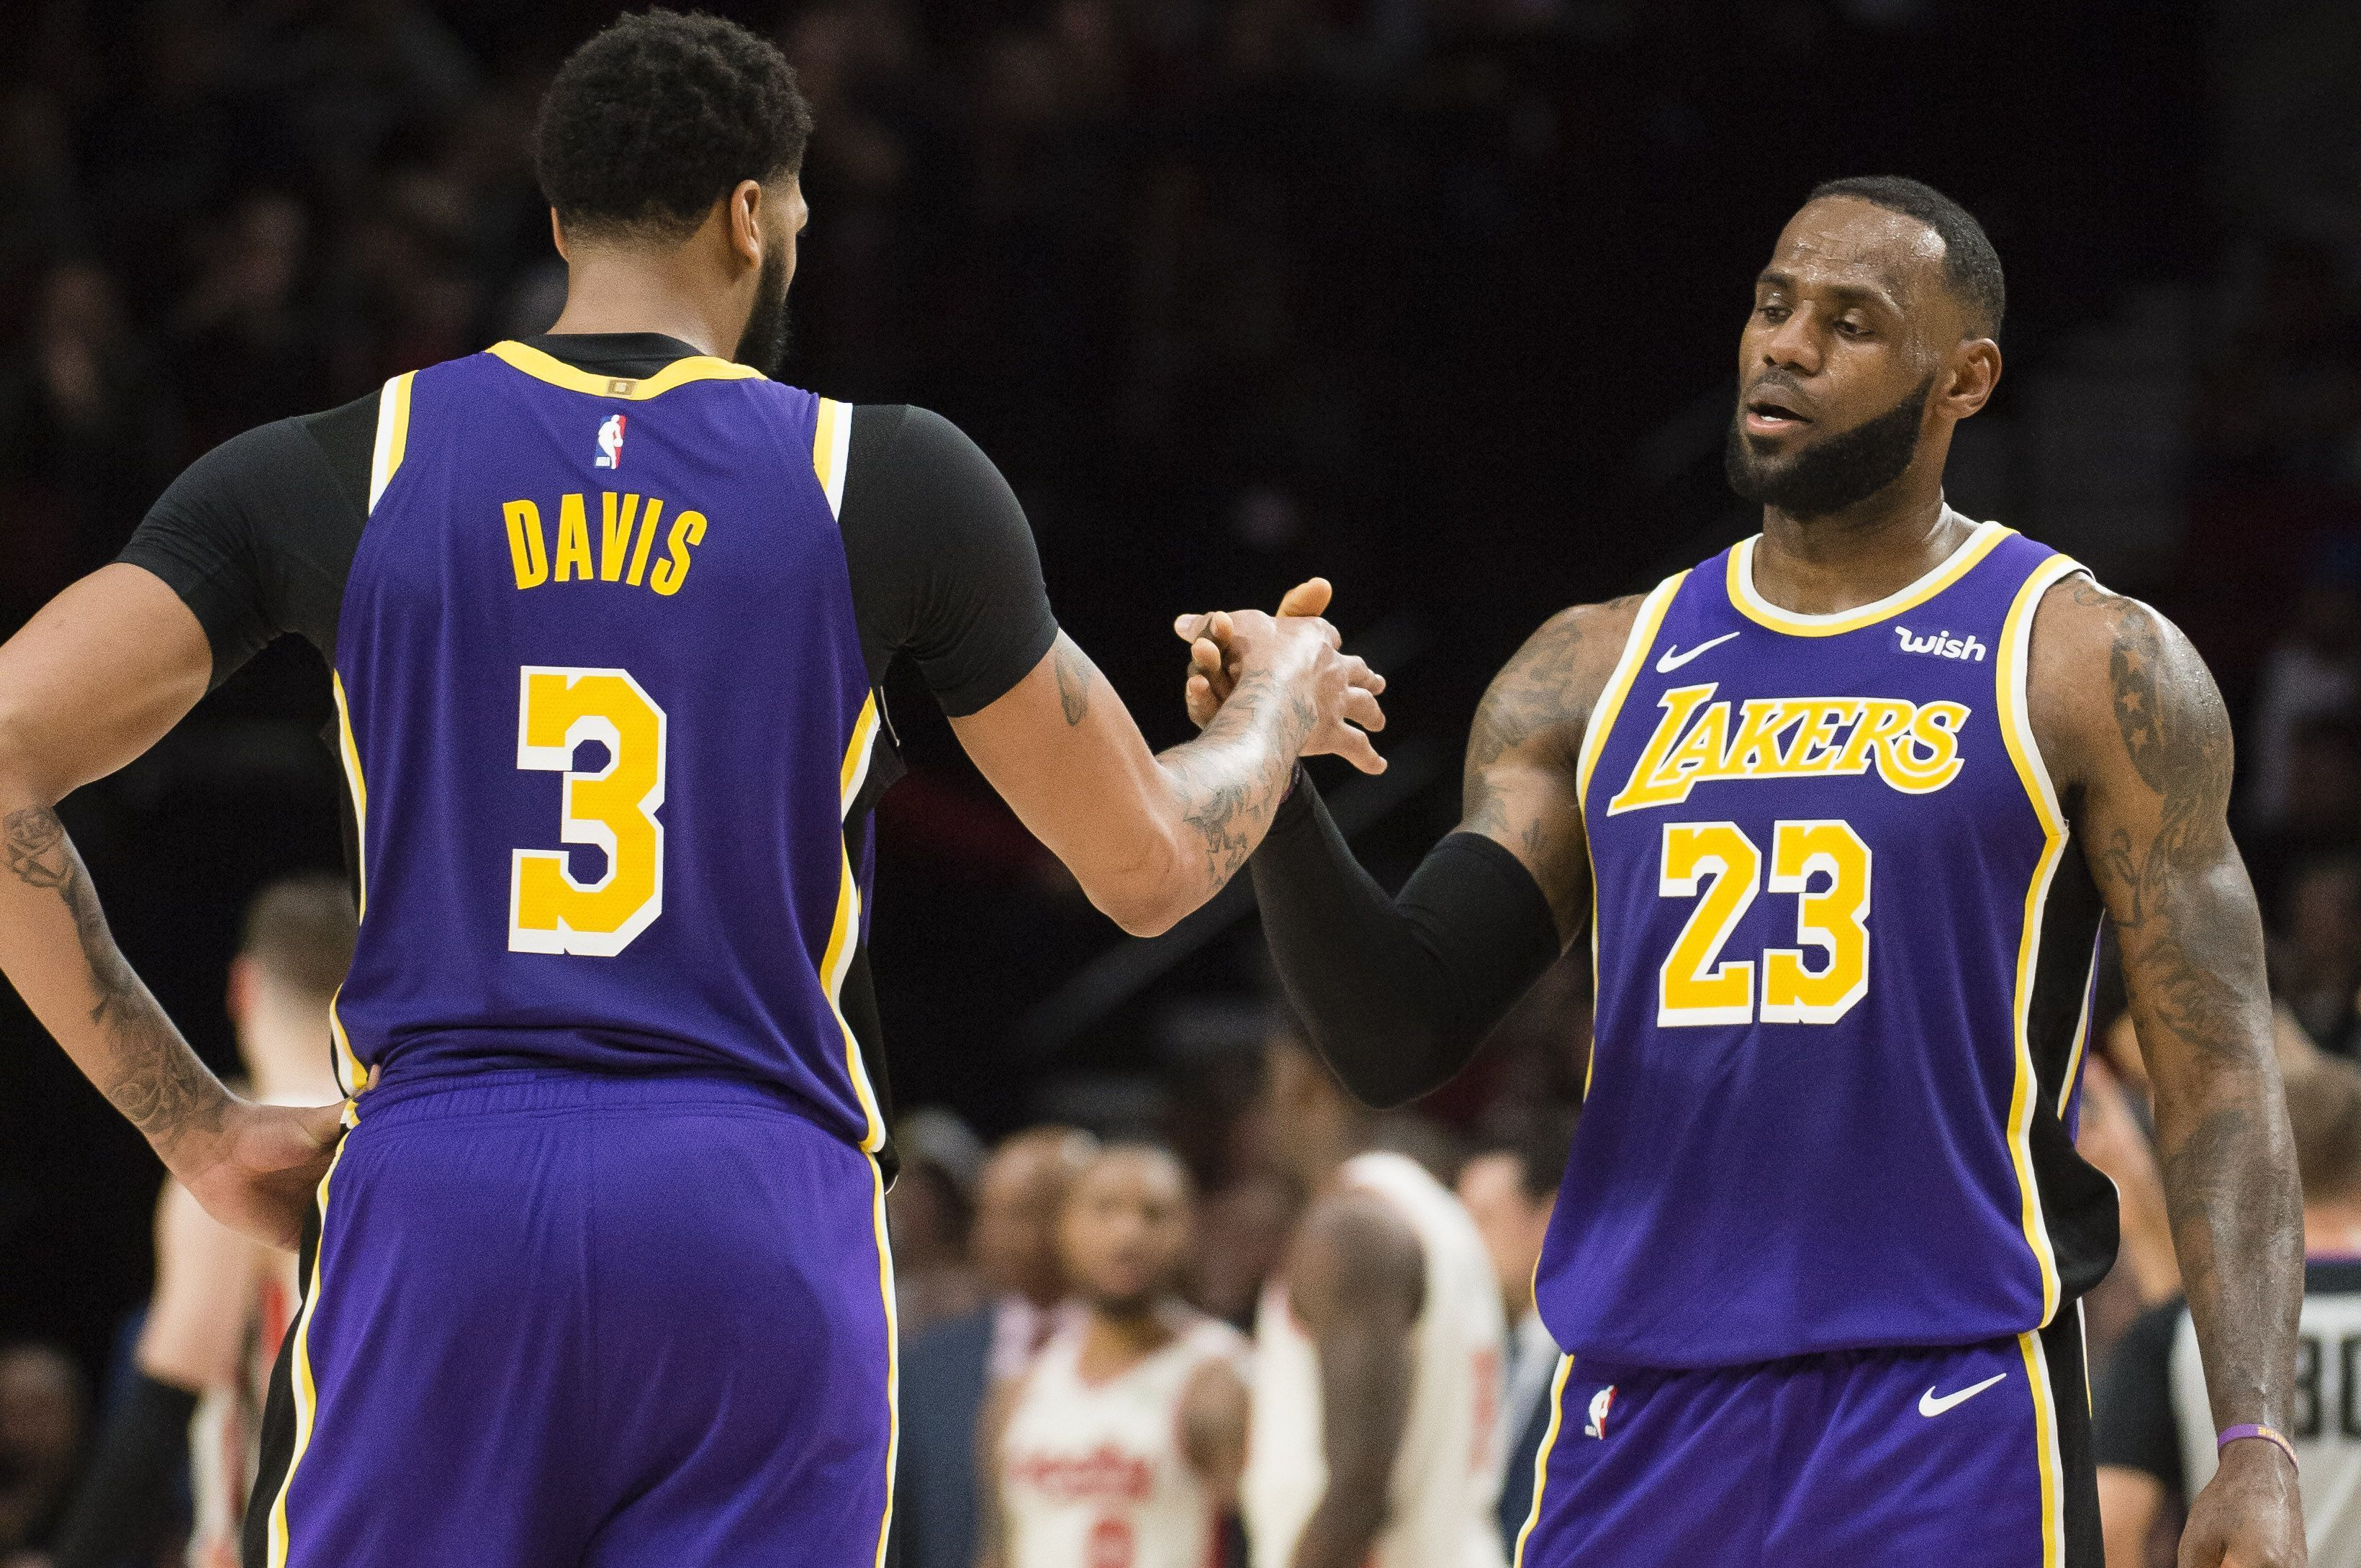 Trail Blazers Vs Lakers Game 1 A Few Things To Think About Tonight Remember Game 1 Of A Series Isn T Always In 2020 Trail Blazers Portland Trailblazers Nba News